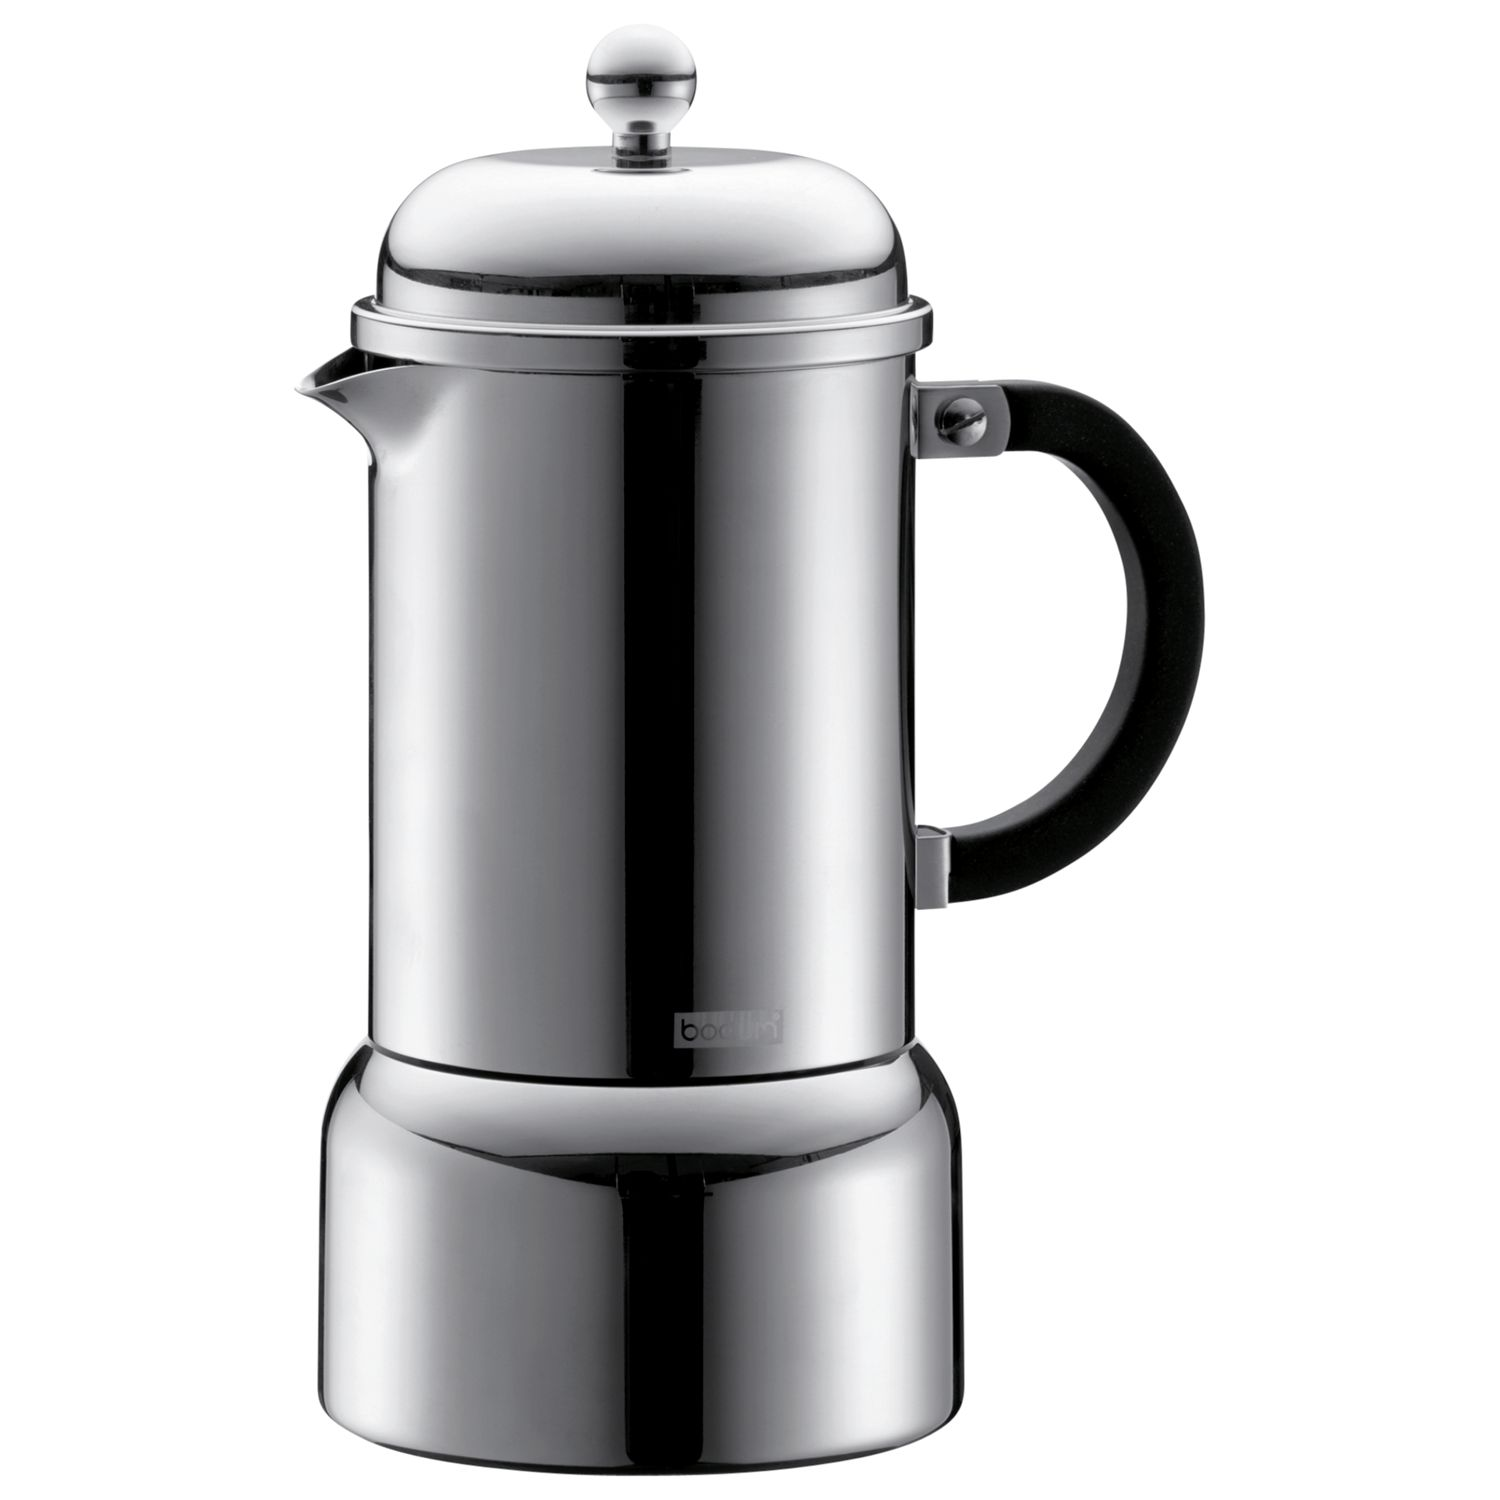 Italian Coffee Maker John Lewis : Buy Bodum Espresso 6 Cup Coffee Maker, 350ml, Silver John Lewis